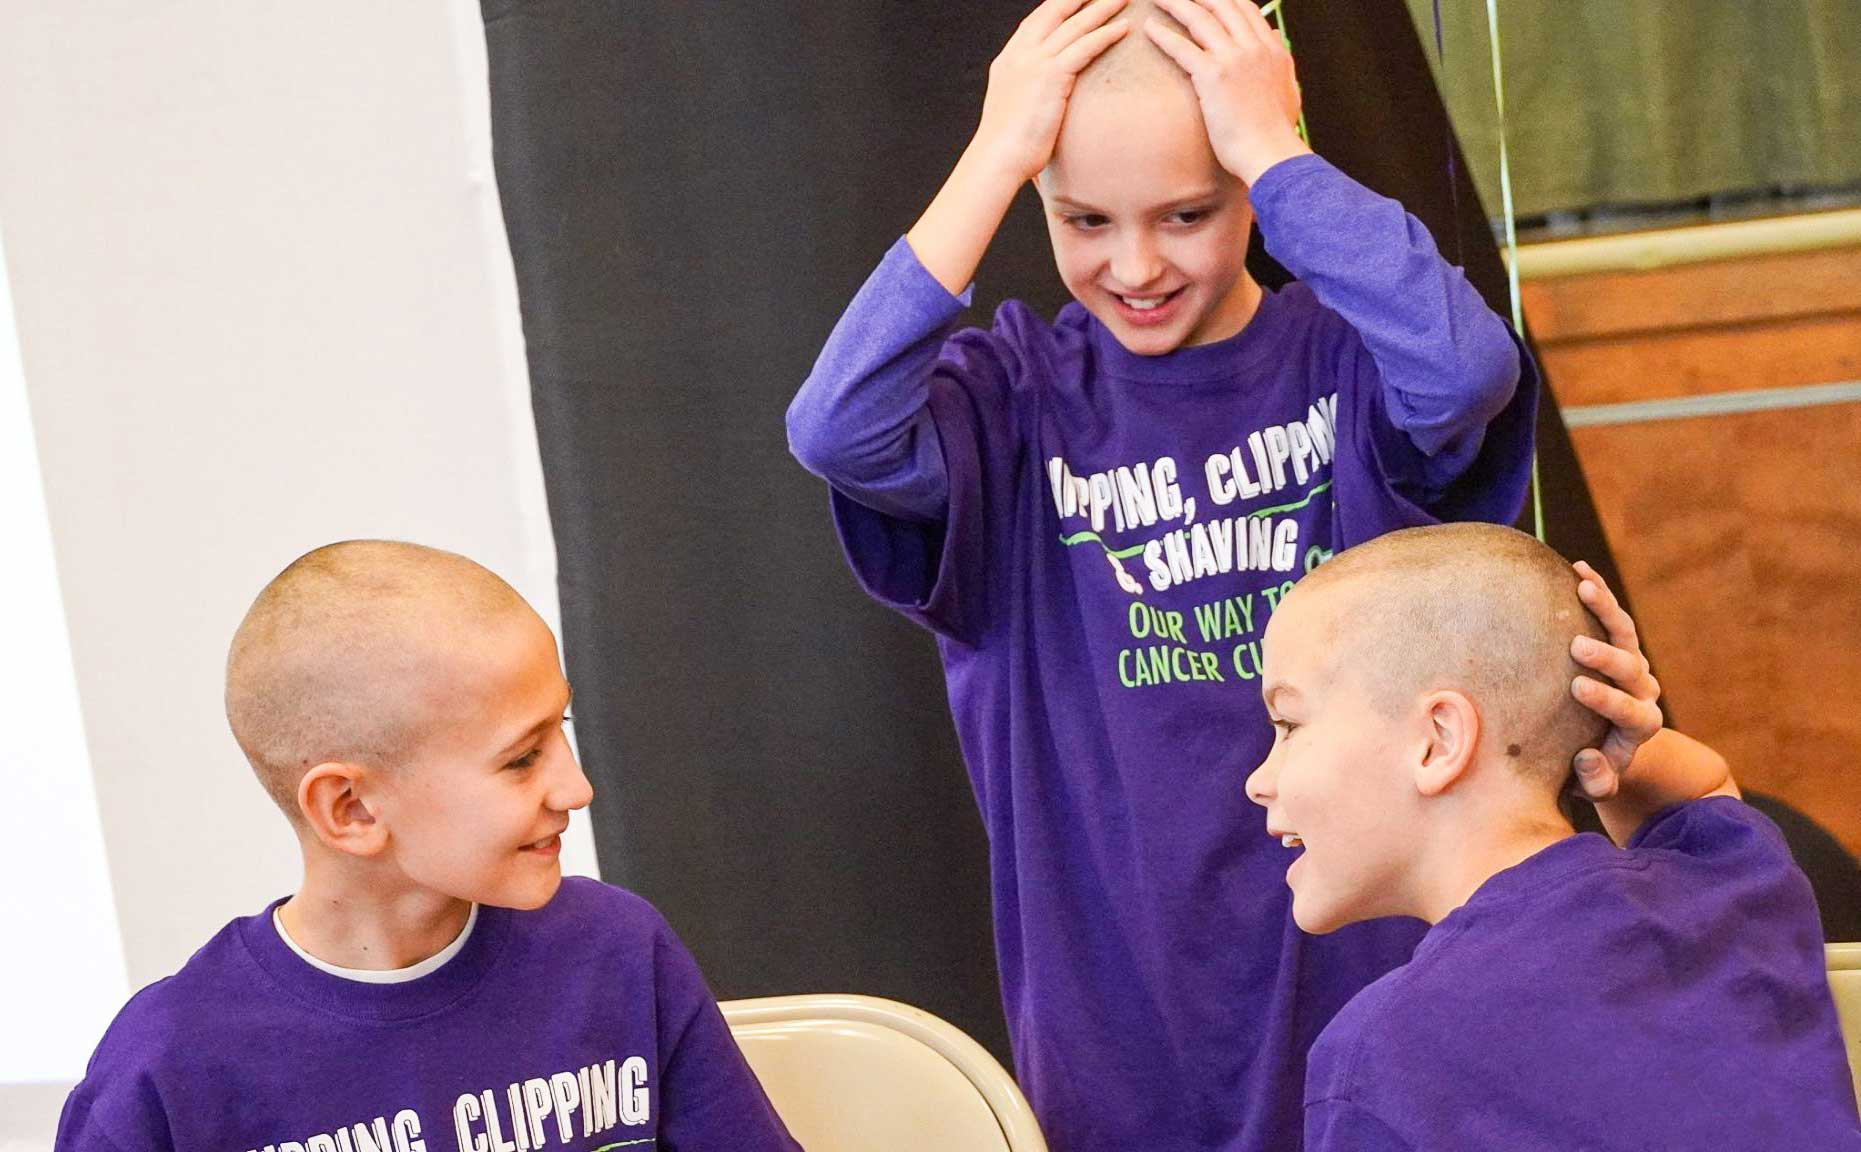 3 students with shaved heads